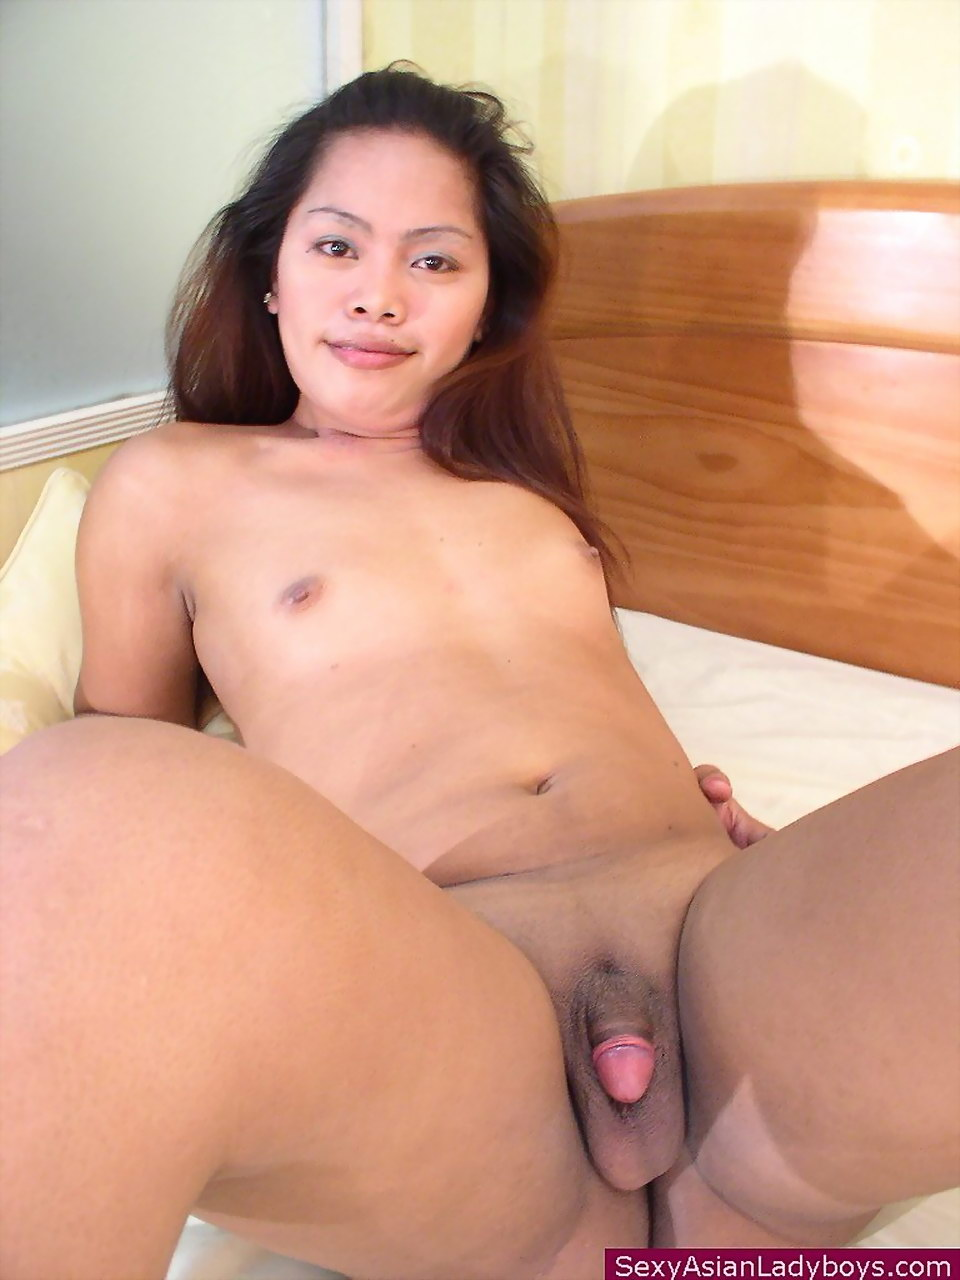 asian ladyboy galleries -